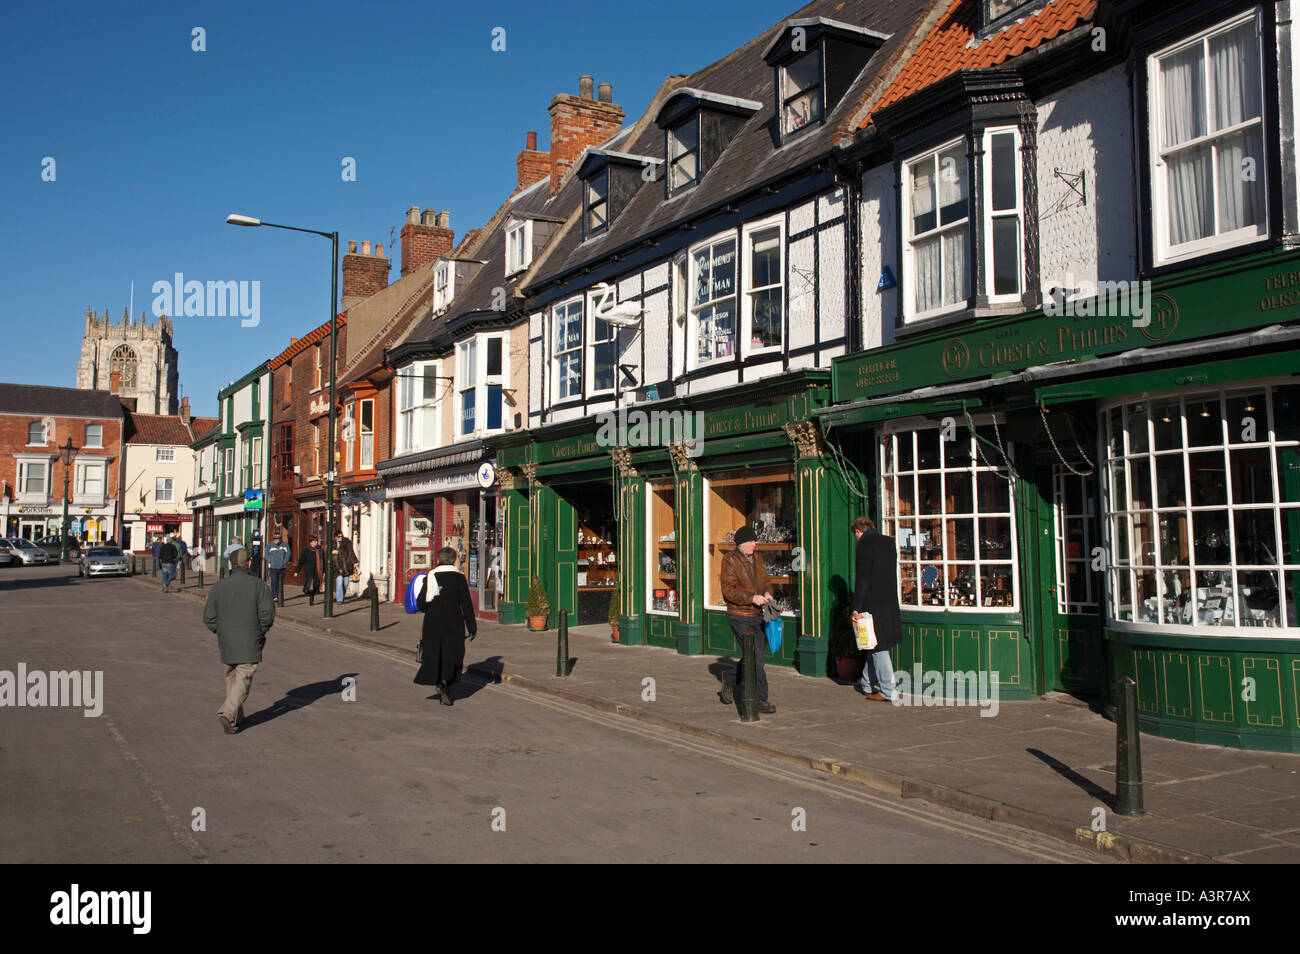 Shopping in the Market Town of Beverley, East Yorkshire, UK Stock Photo